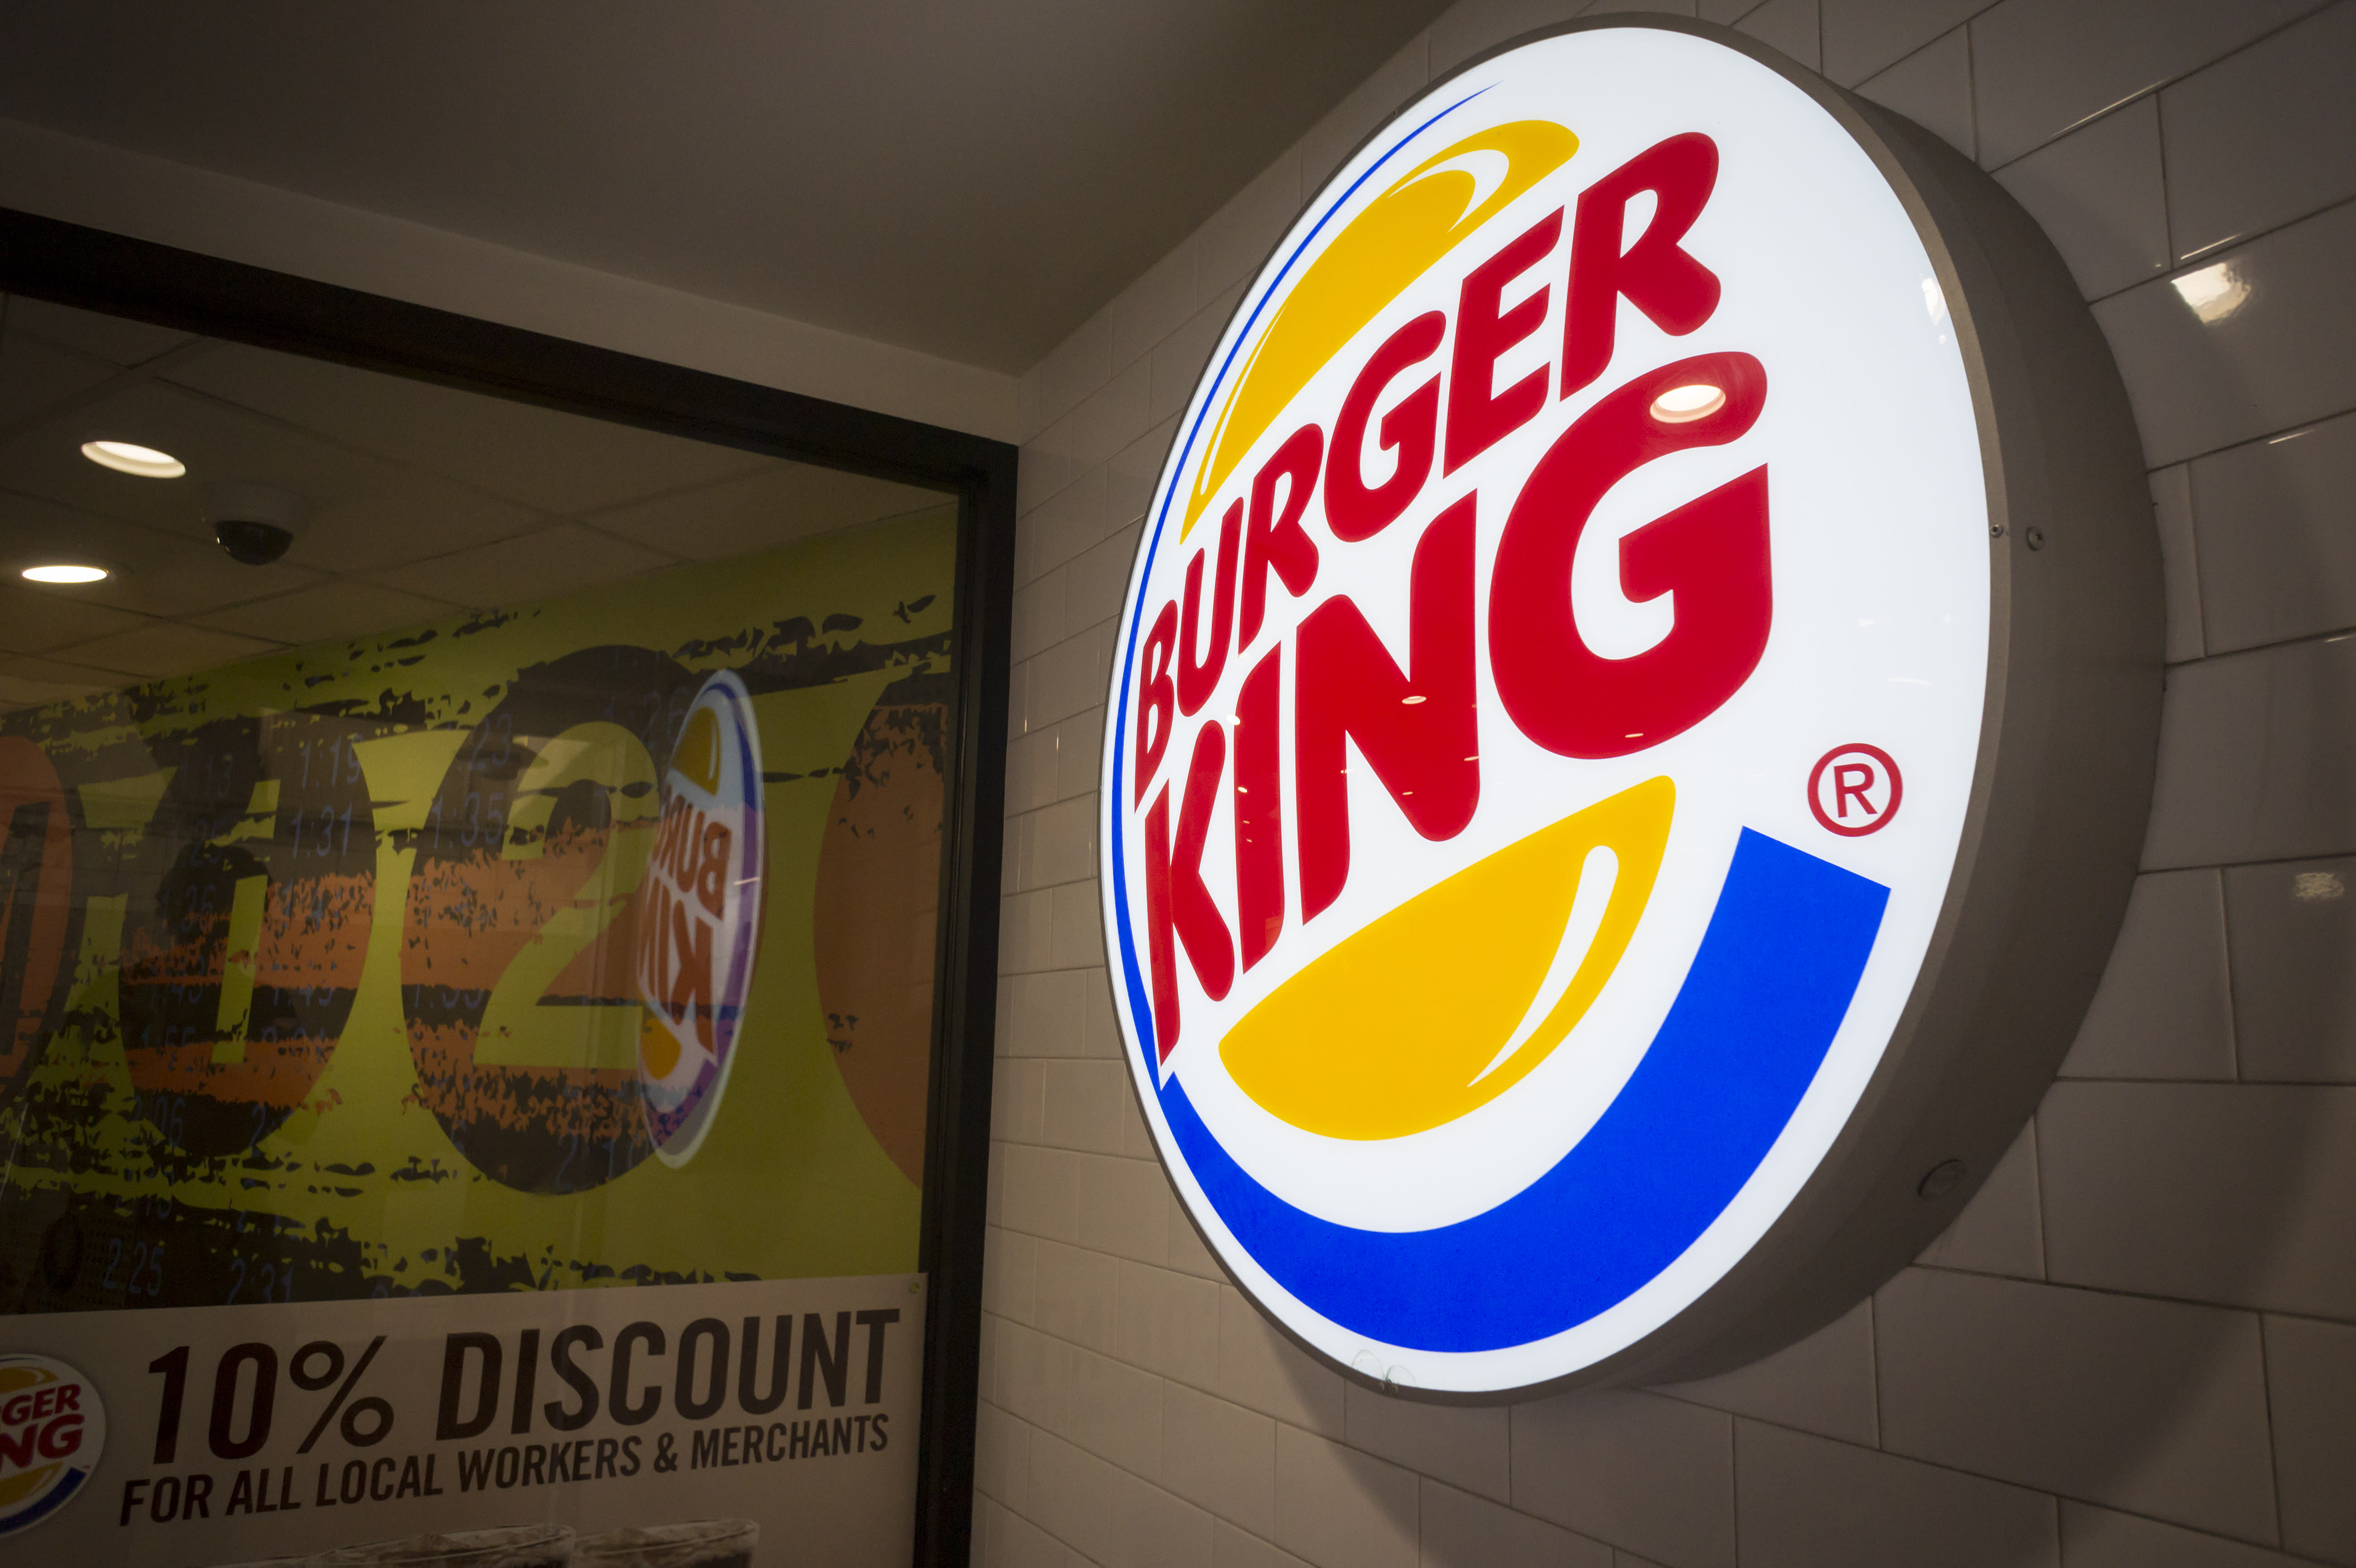 Entrance to a Burger King fast food restaurant in New York on Monday, August 25, 2014. Restaurant Brands International, the parent of Burger King and Tim Horton's, reported fourth-quarter profit that beat analysts' expectations. Innovative menu offerings including Nutella pockets are cited. (�� Richard B. Levine) (Photo by Richard Levine/Corbis via Getty Images)